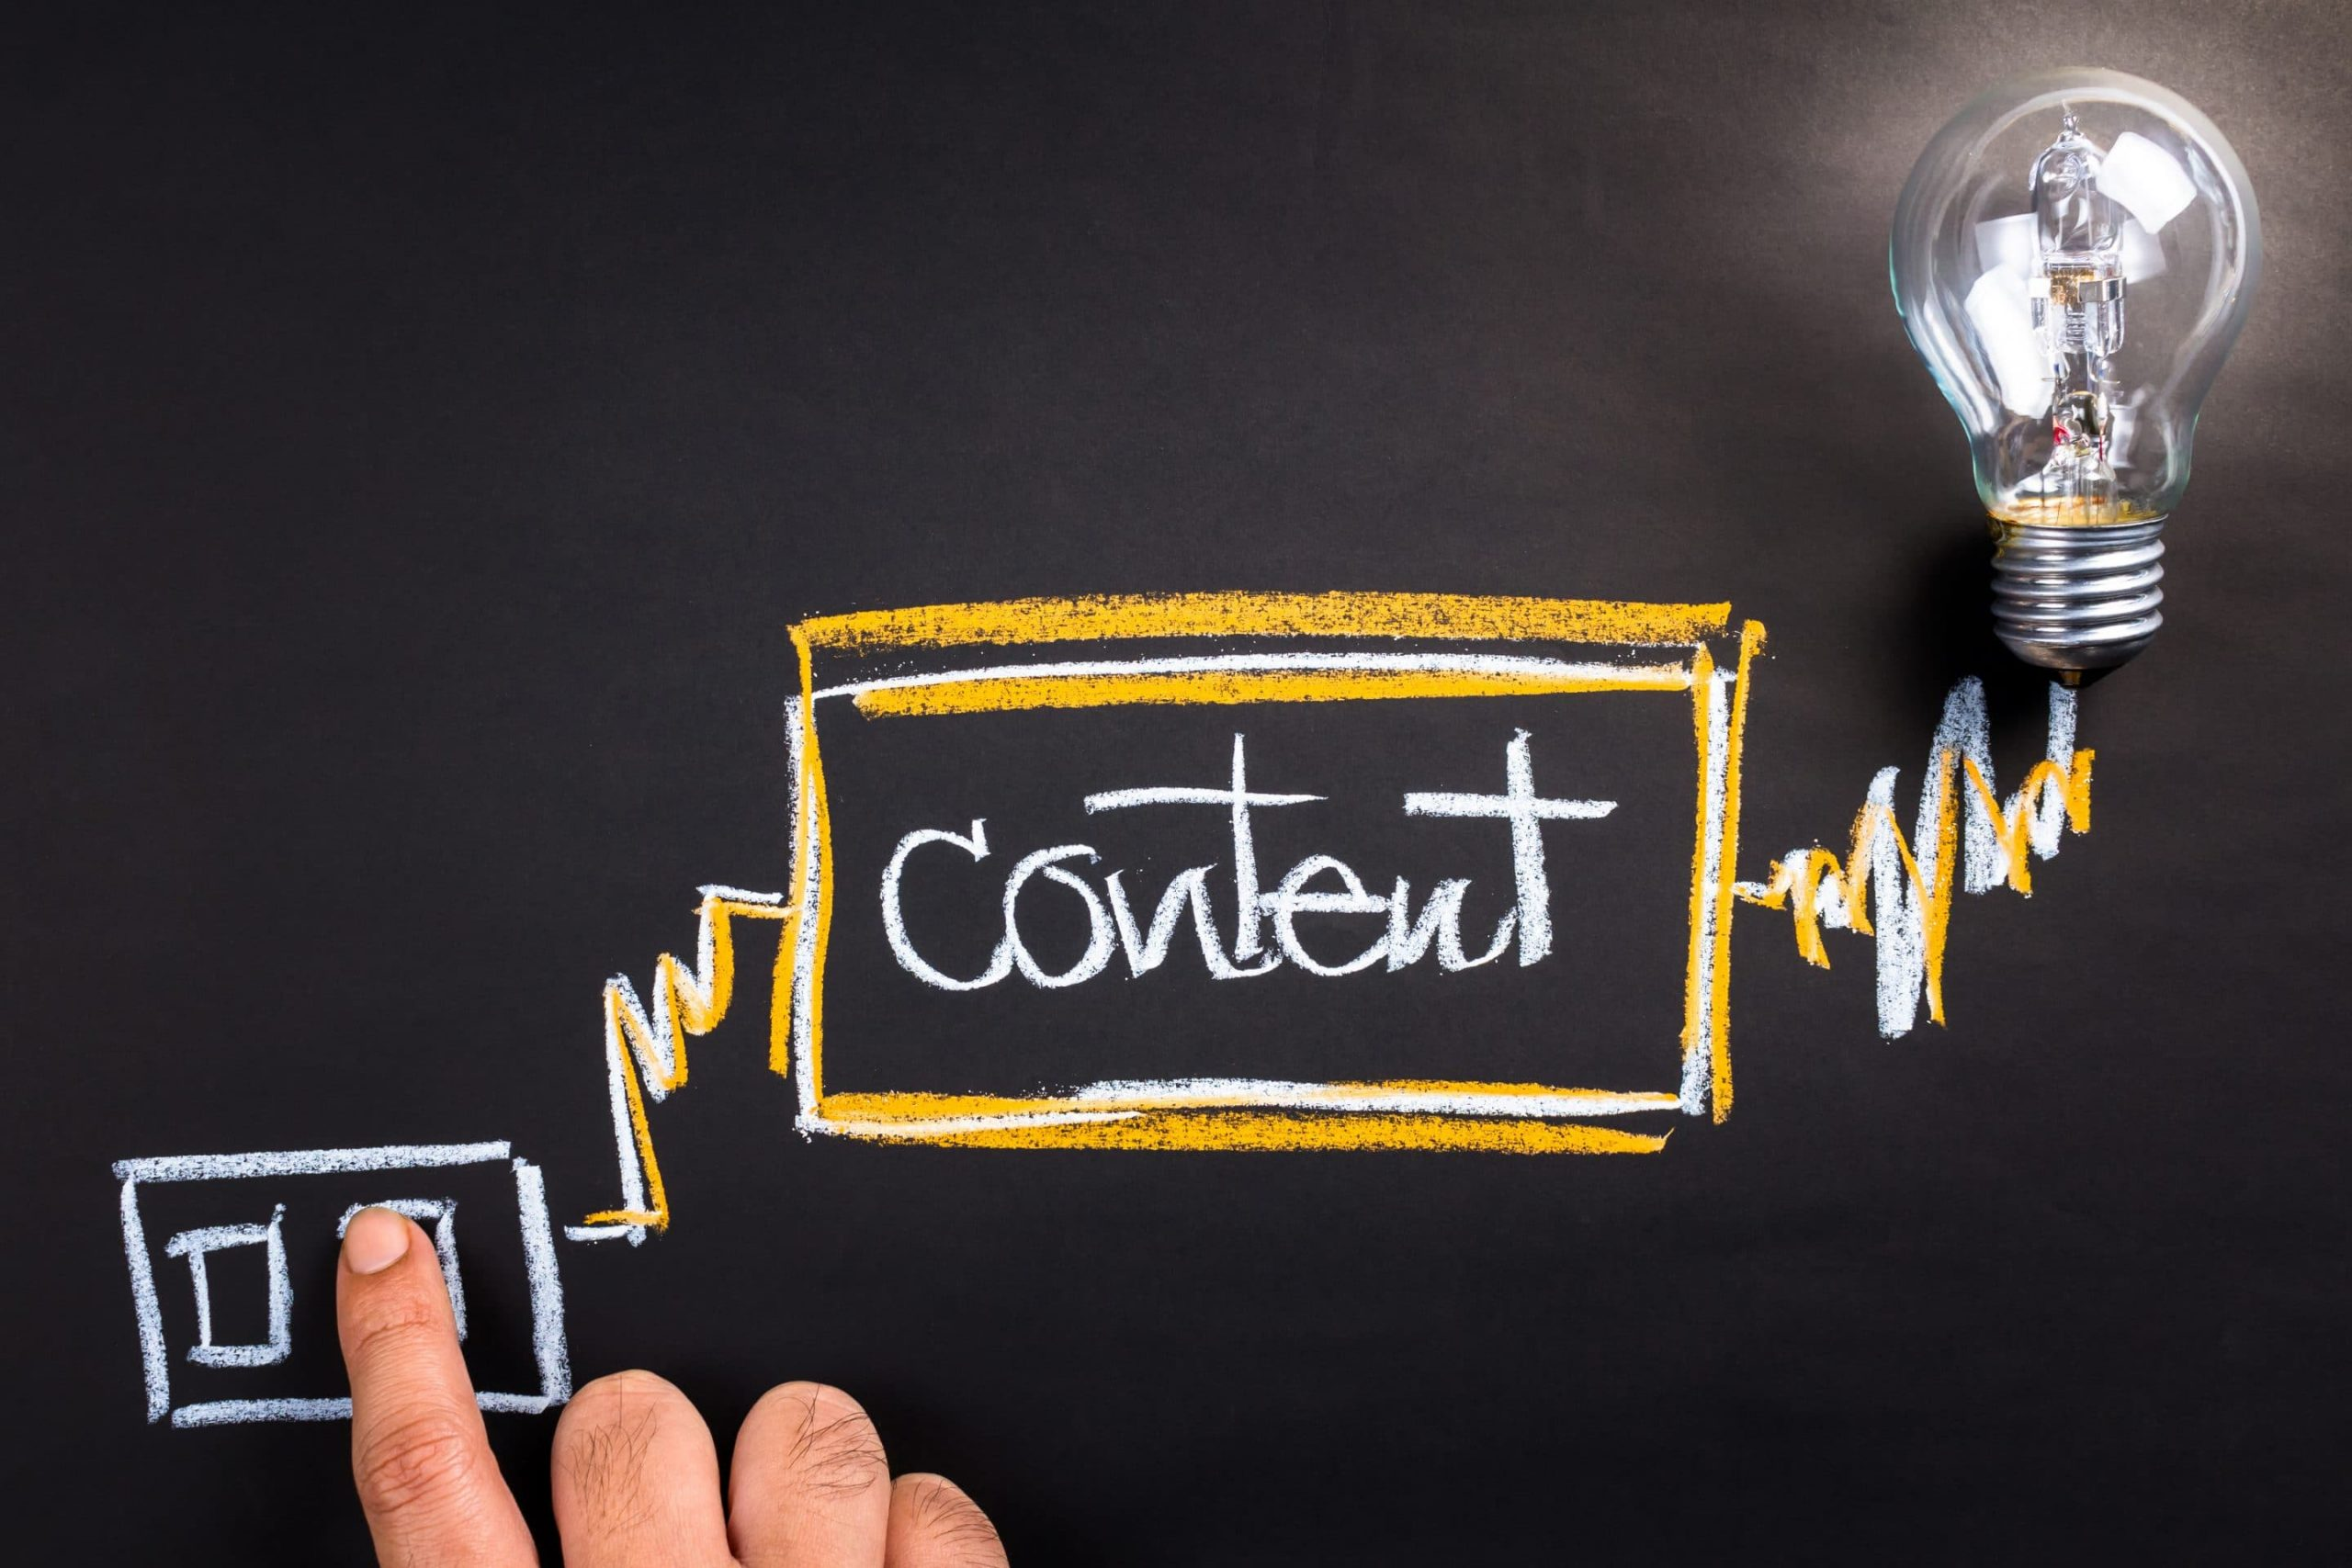 5 Reasons You Need to Invest In Content Marketing - Business 2 Community